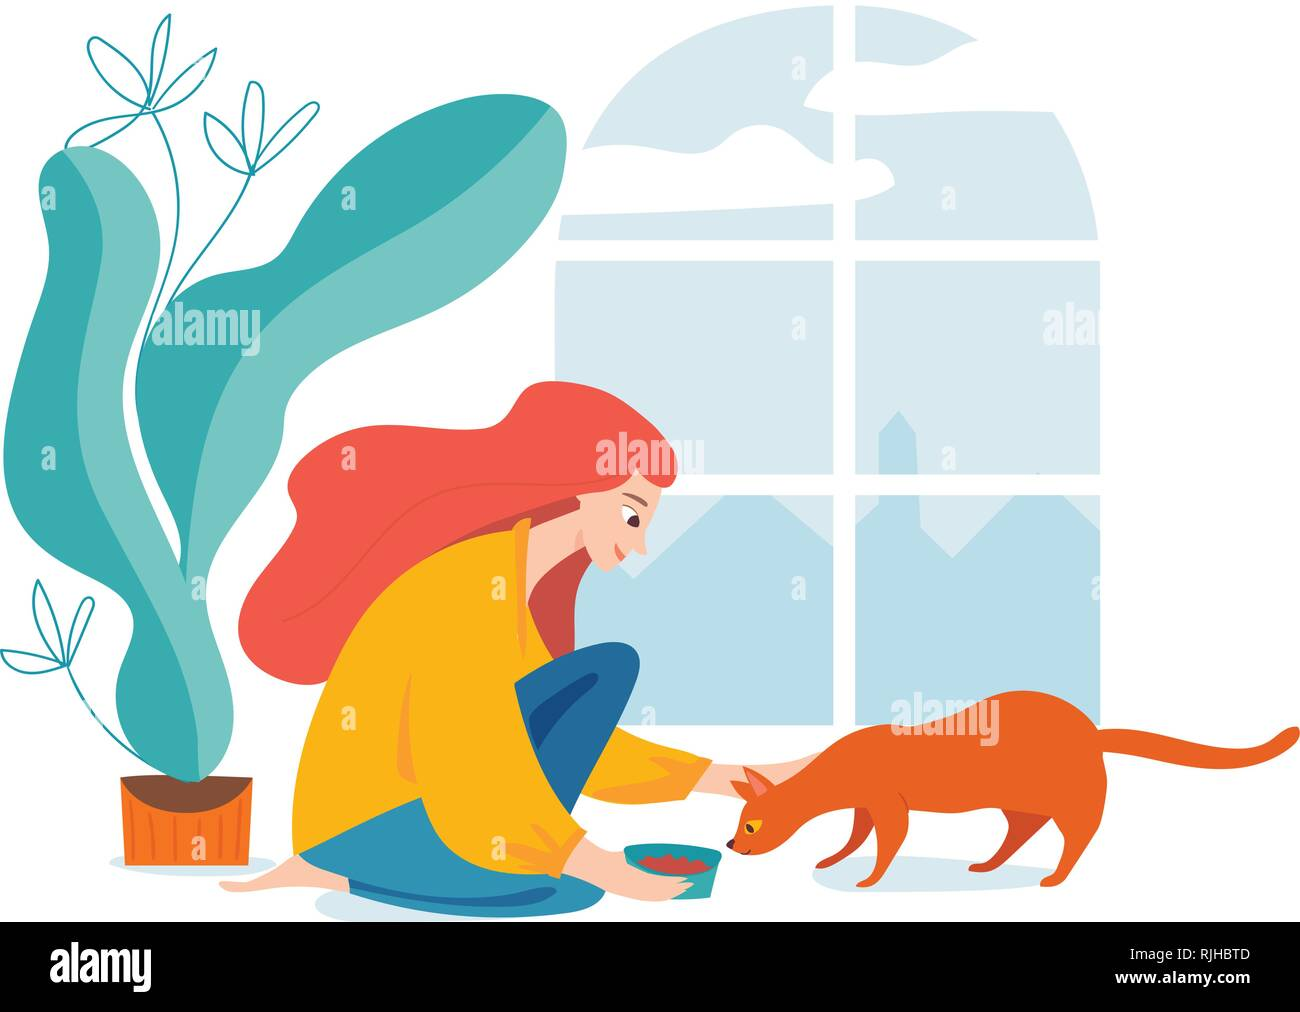 Hygge illustration with a womal feed a cat - Stock Image